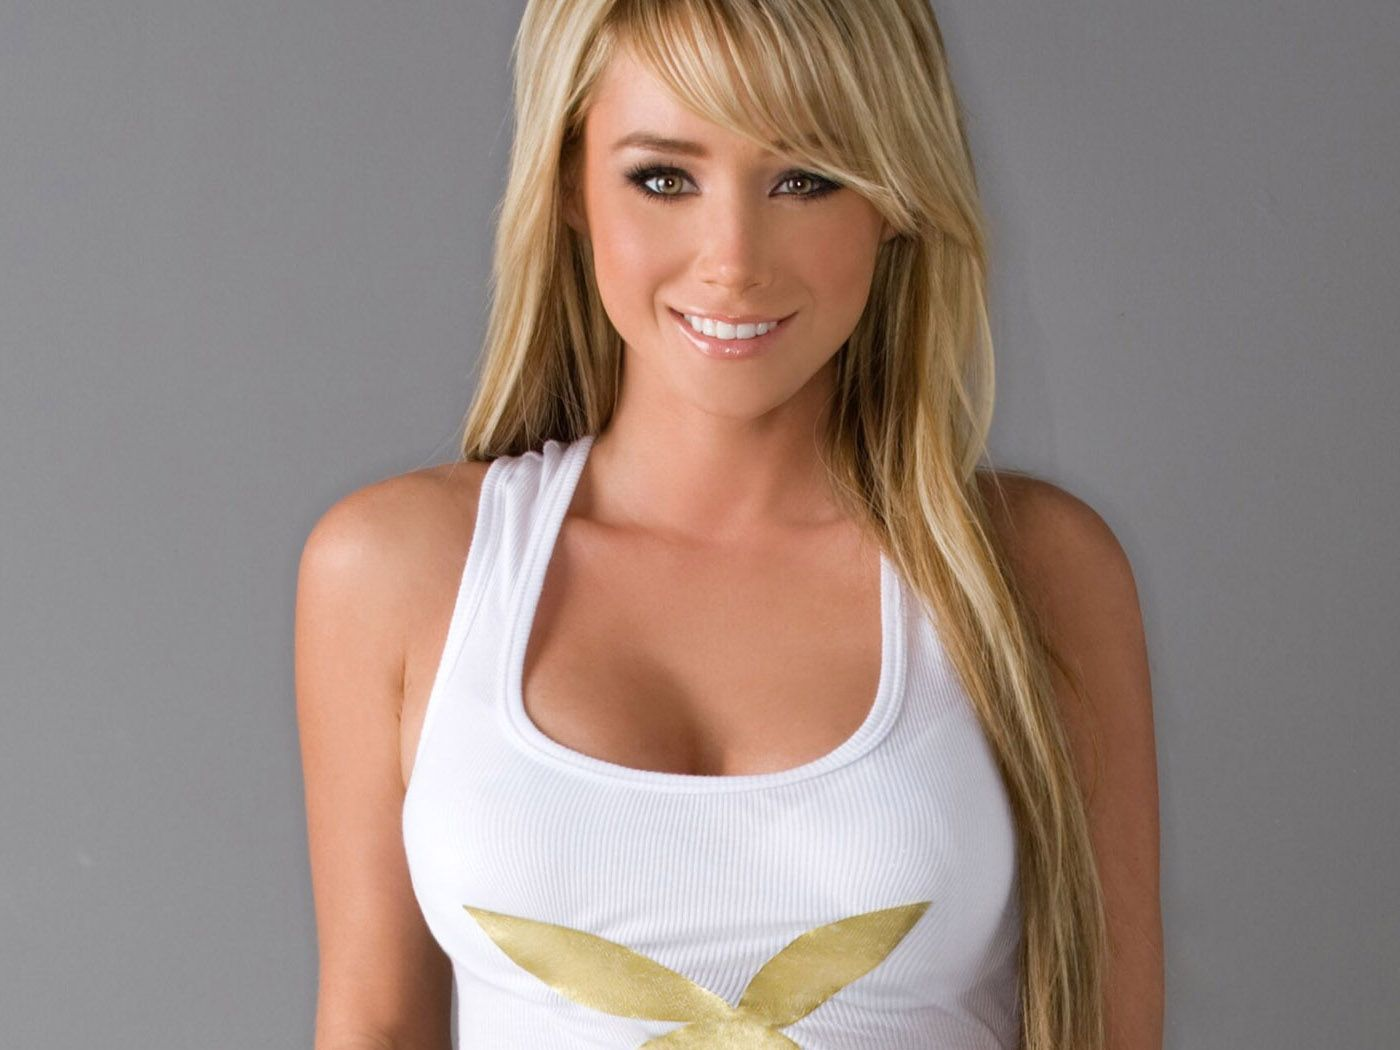 sara jean underwood porno Results 1 - 30  There are a lot of GREAT free porn films about sarah jean underwood at ro89.